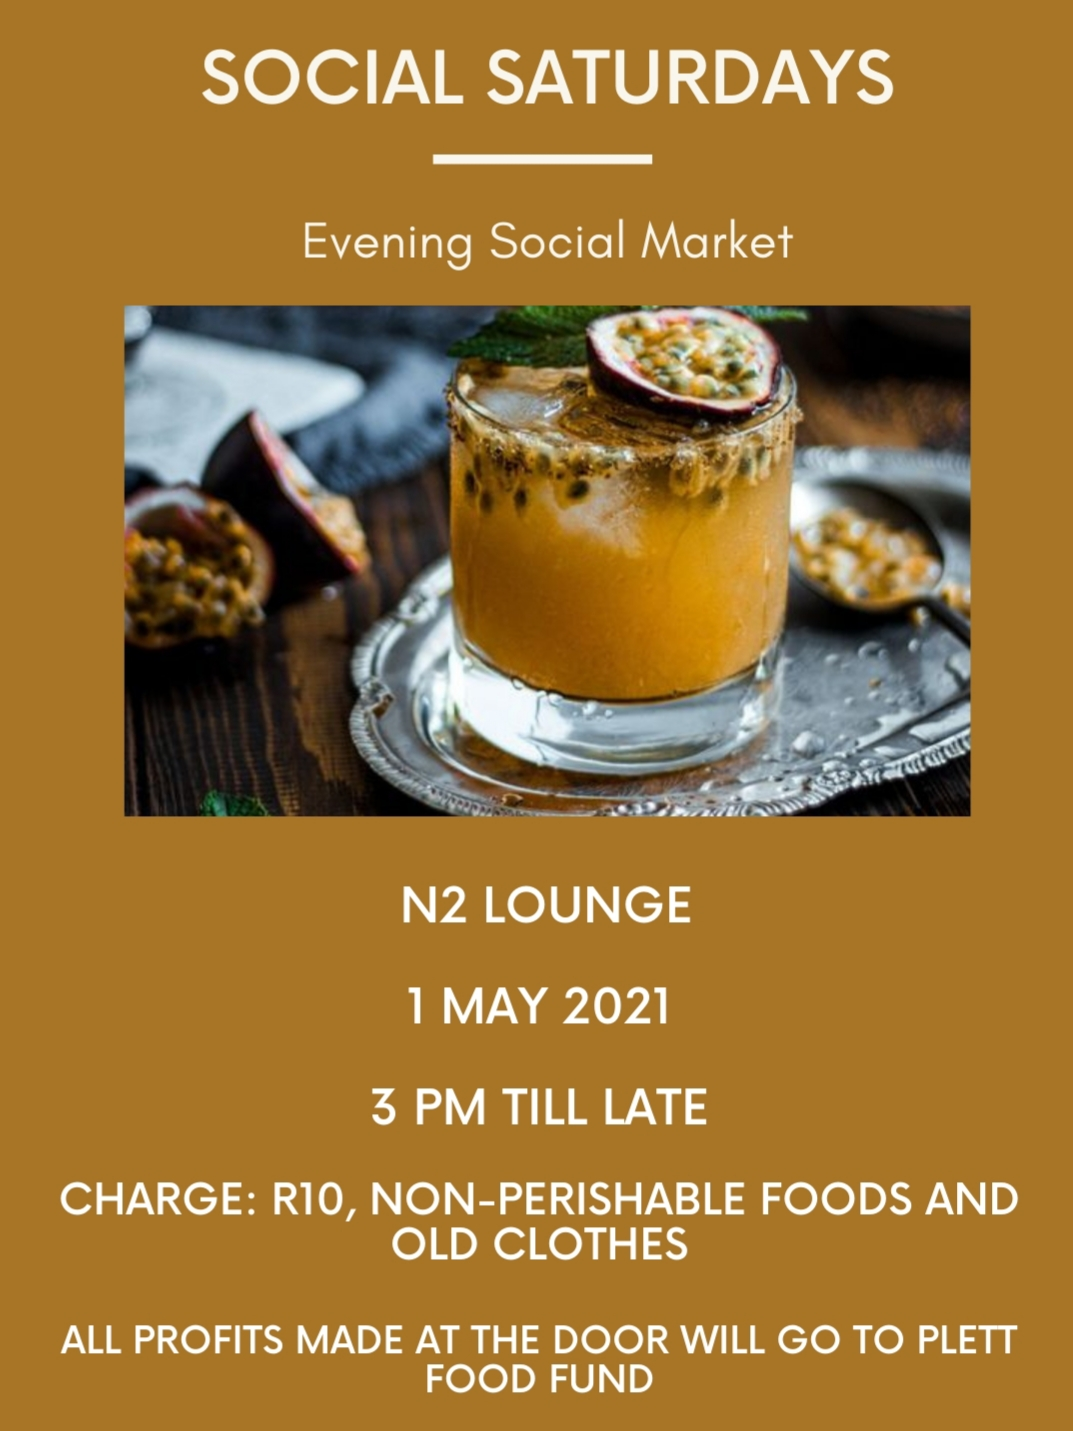 Social Saturdays at N2 Lounge in Kwanokuthula, Plett